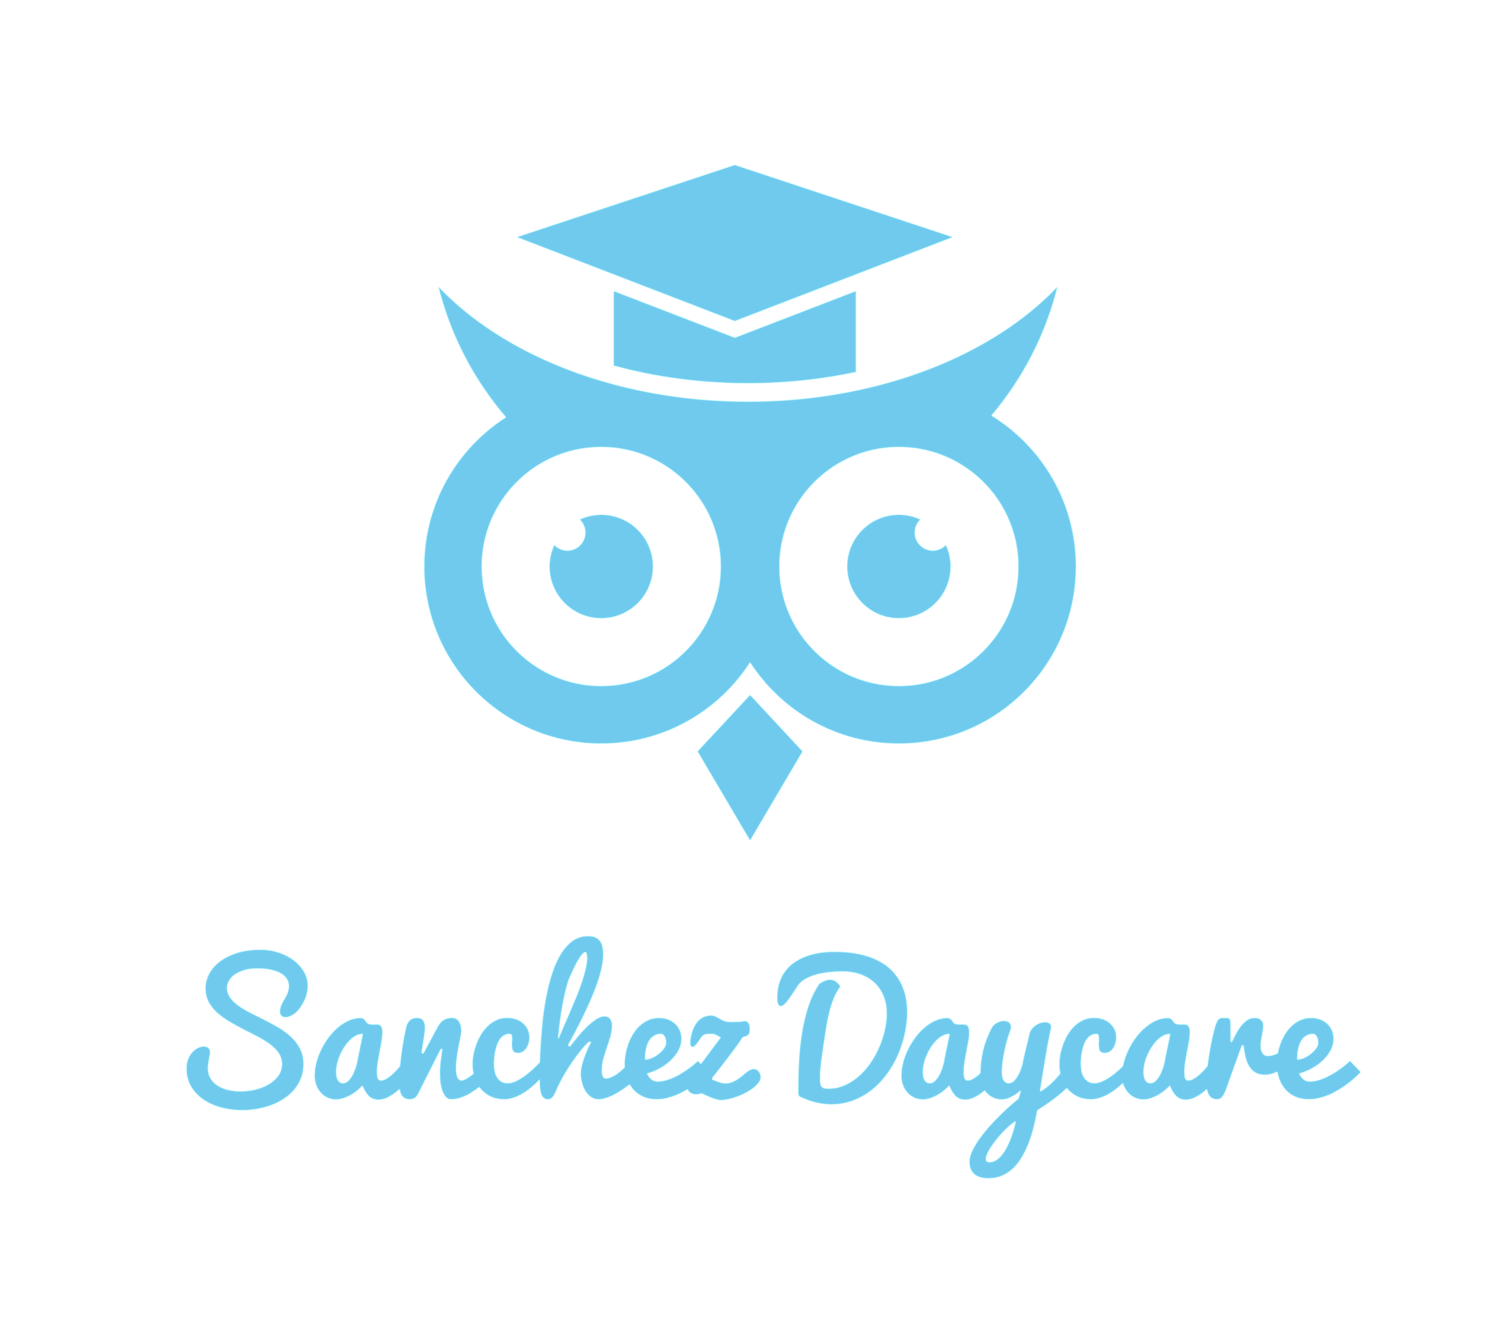 The Sanchez Daycare